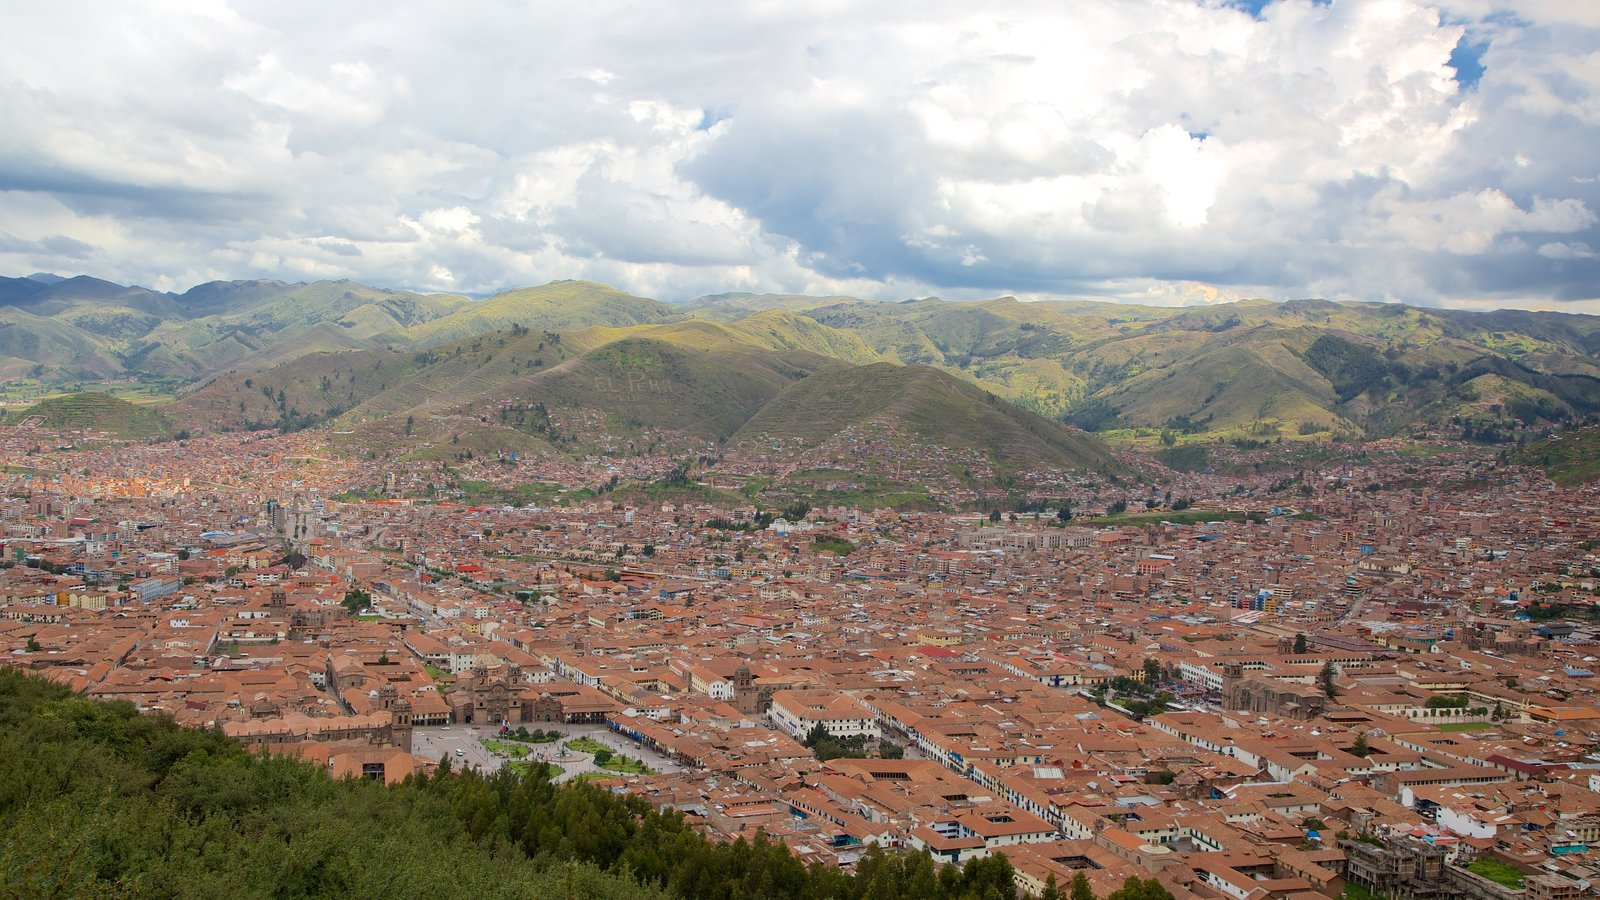 Sacsayhuaman which includes landscape views and a city